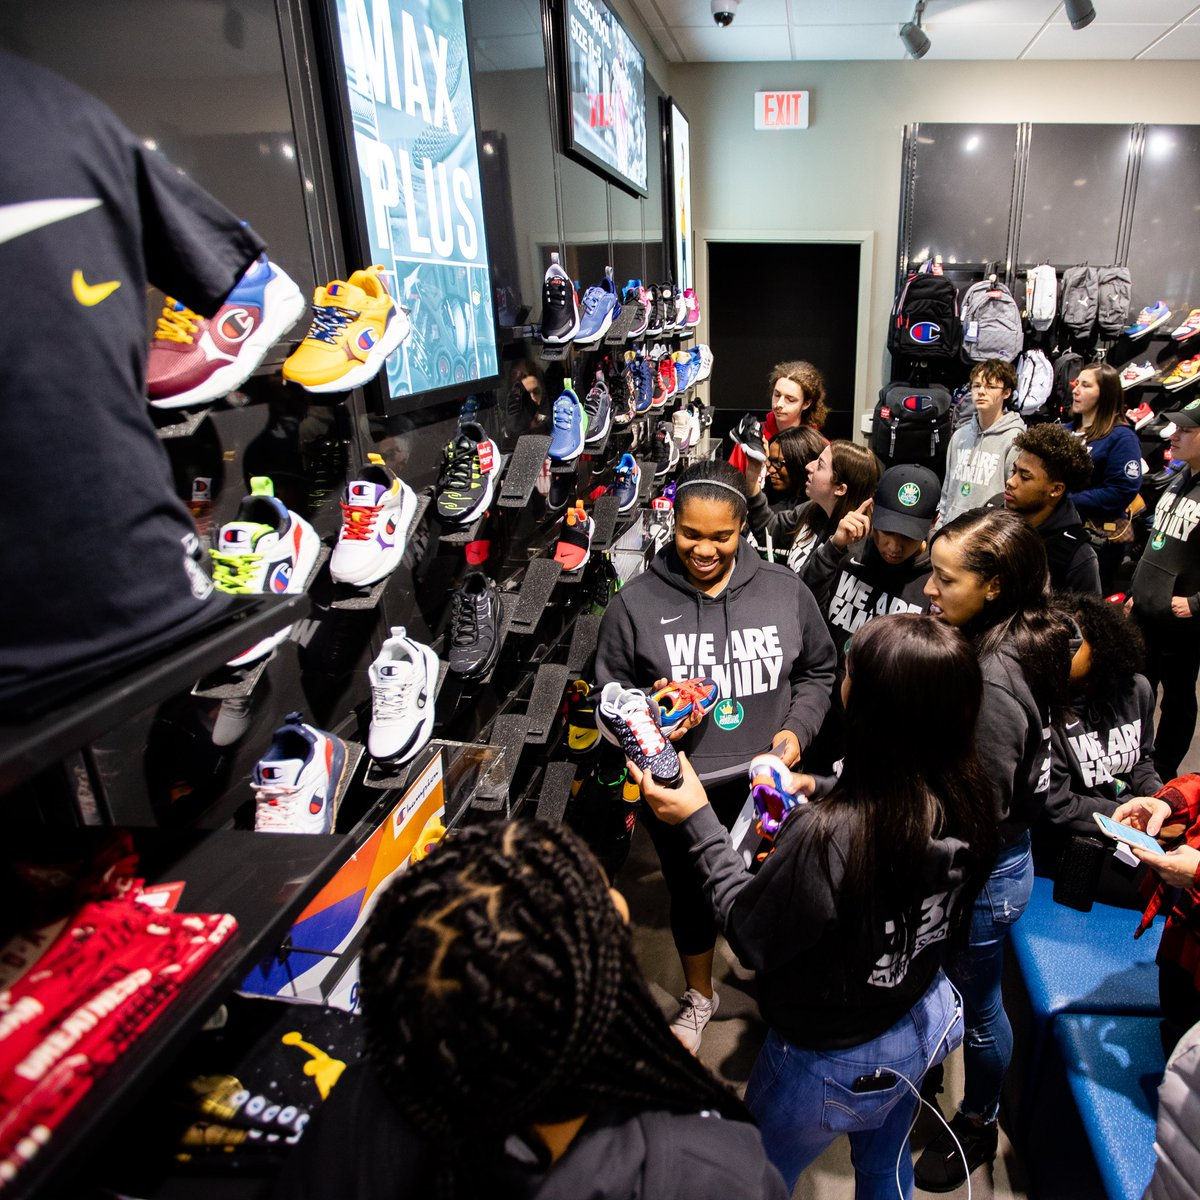 Our 330 Ambassadors have brought the Akron ❤️ to Charlotte, NC as part of @KingJames' mission during #NBAAllStar to leave the host city better than we found it.   Their journey started with a pair of shoes for some special children 👟⬇️